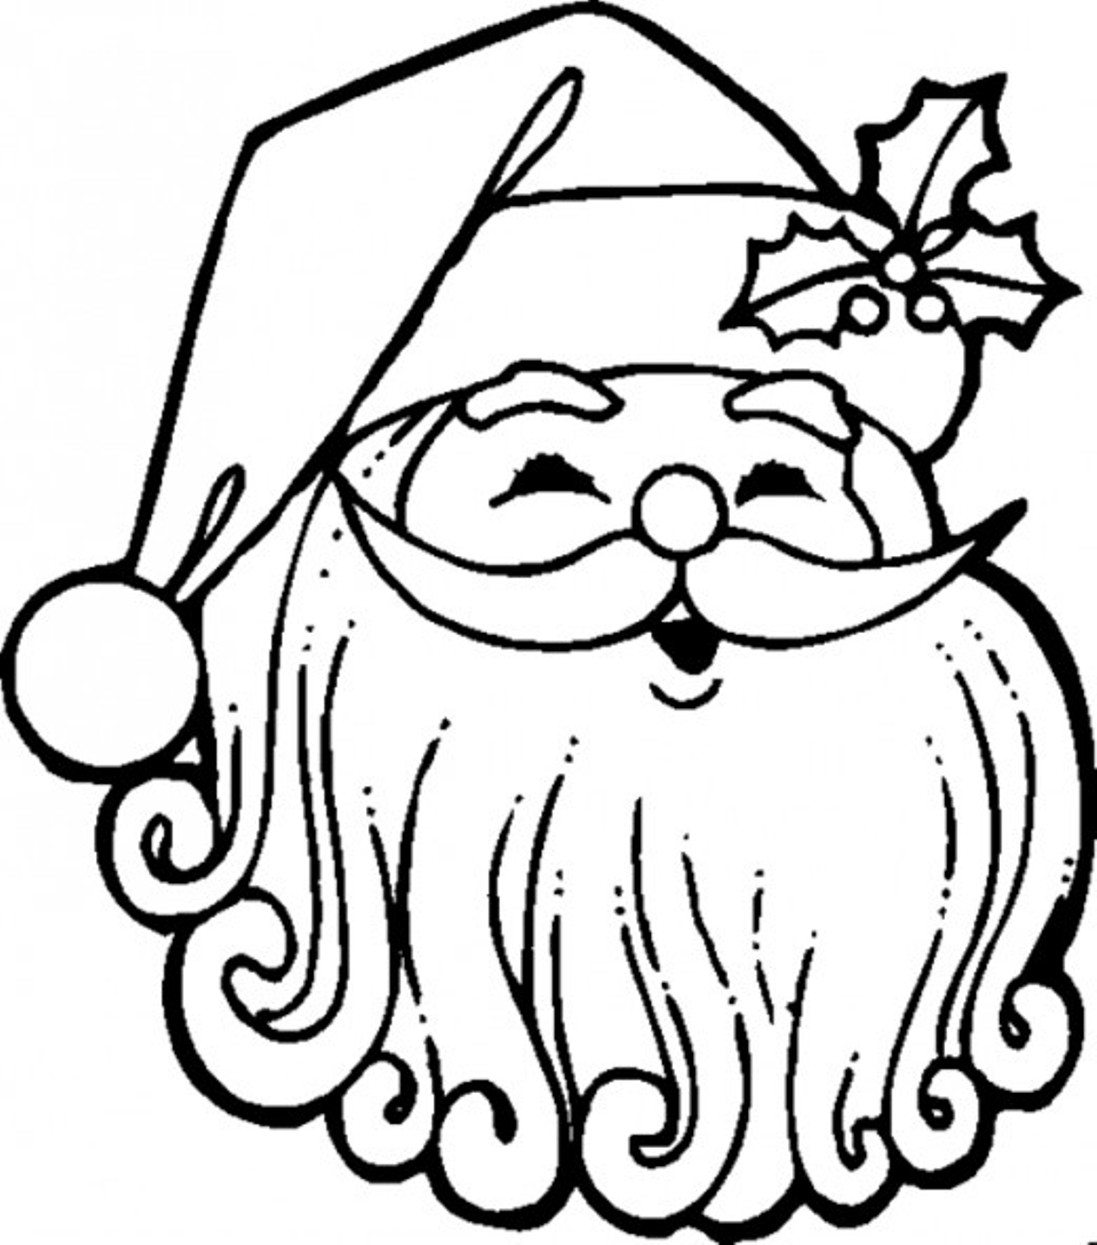 Santa Claus Coloring Pages | Free download best Santa Claus Coloring ...